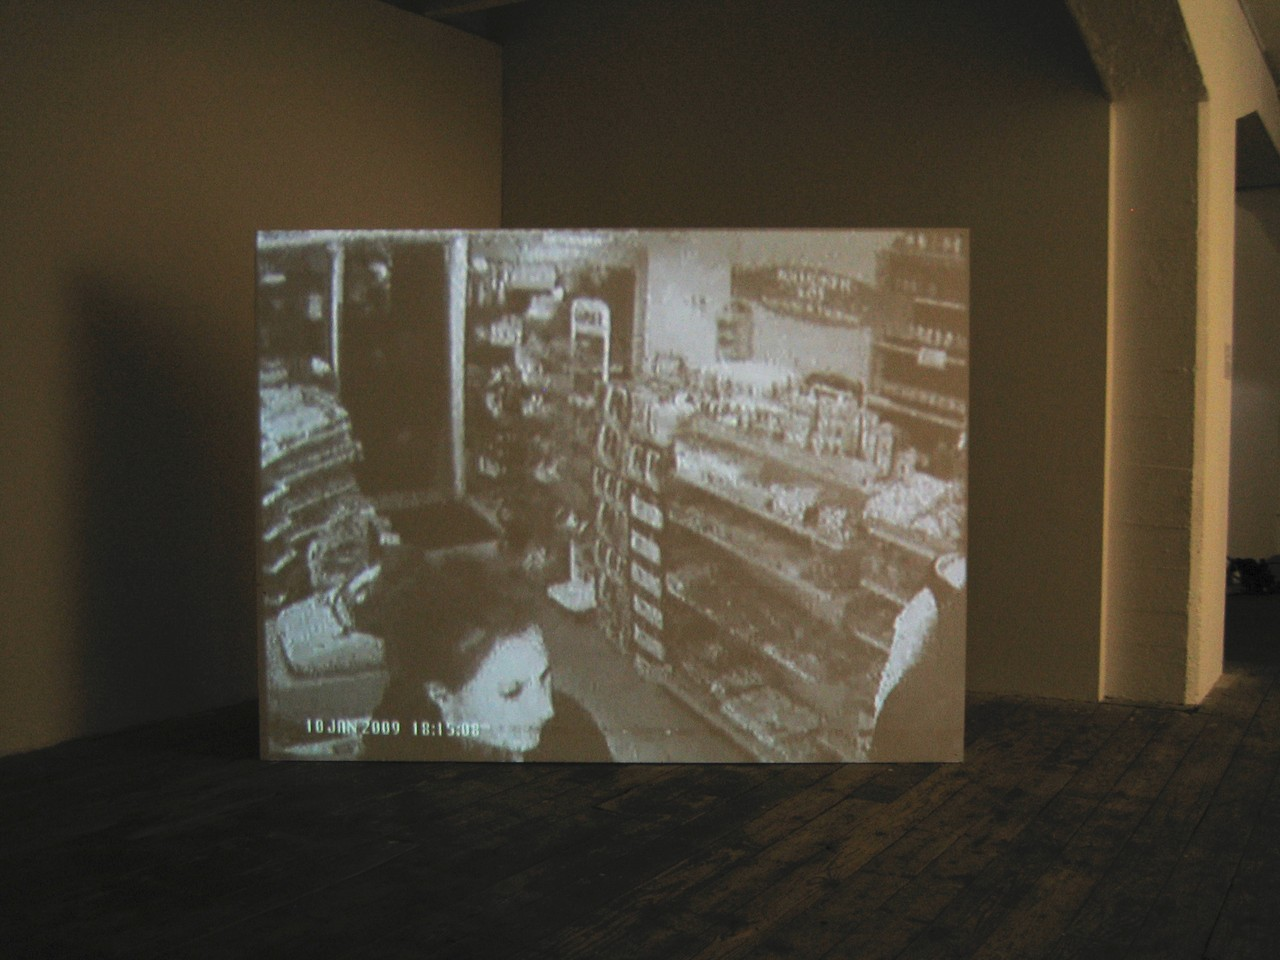 !Mediengruppe Bitnik - CCTV A Trail of Images video installation 2009